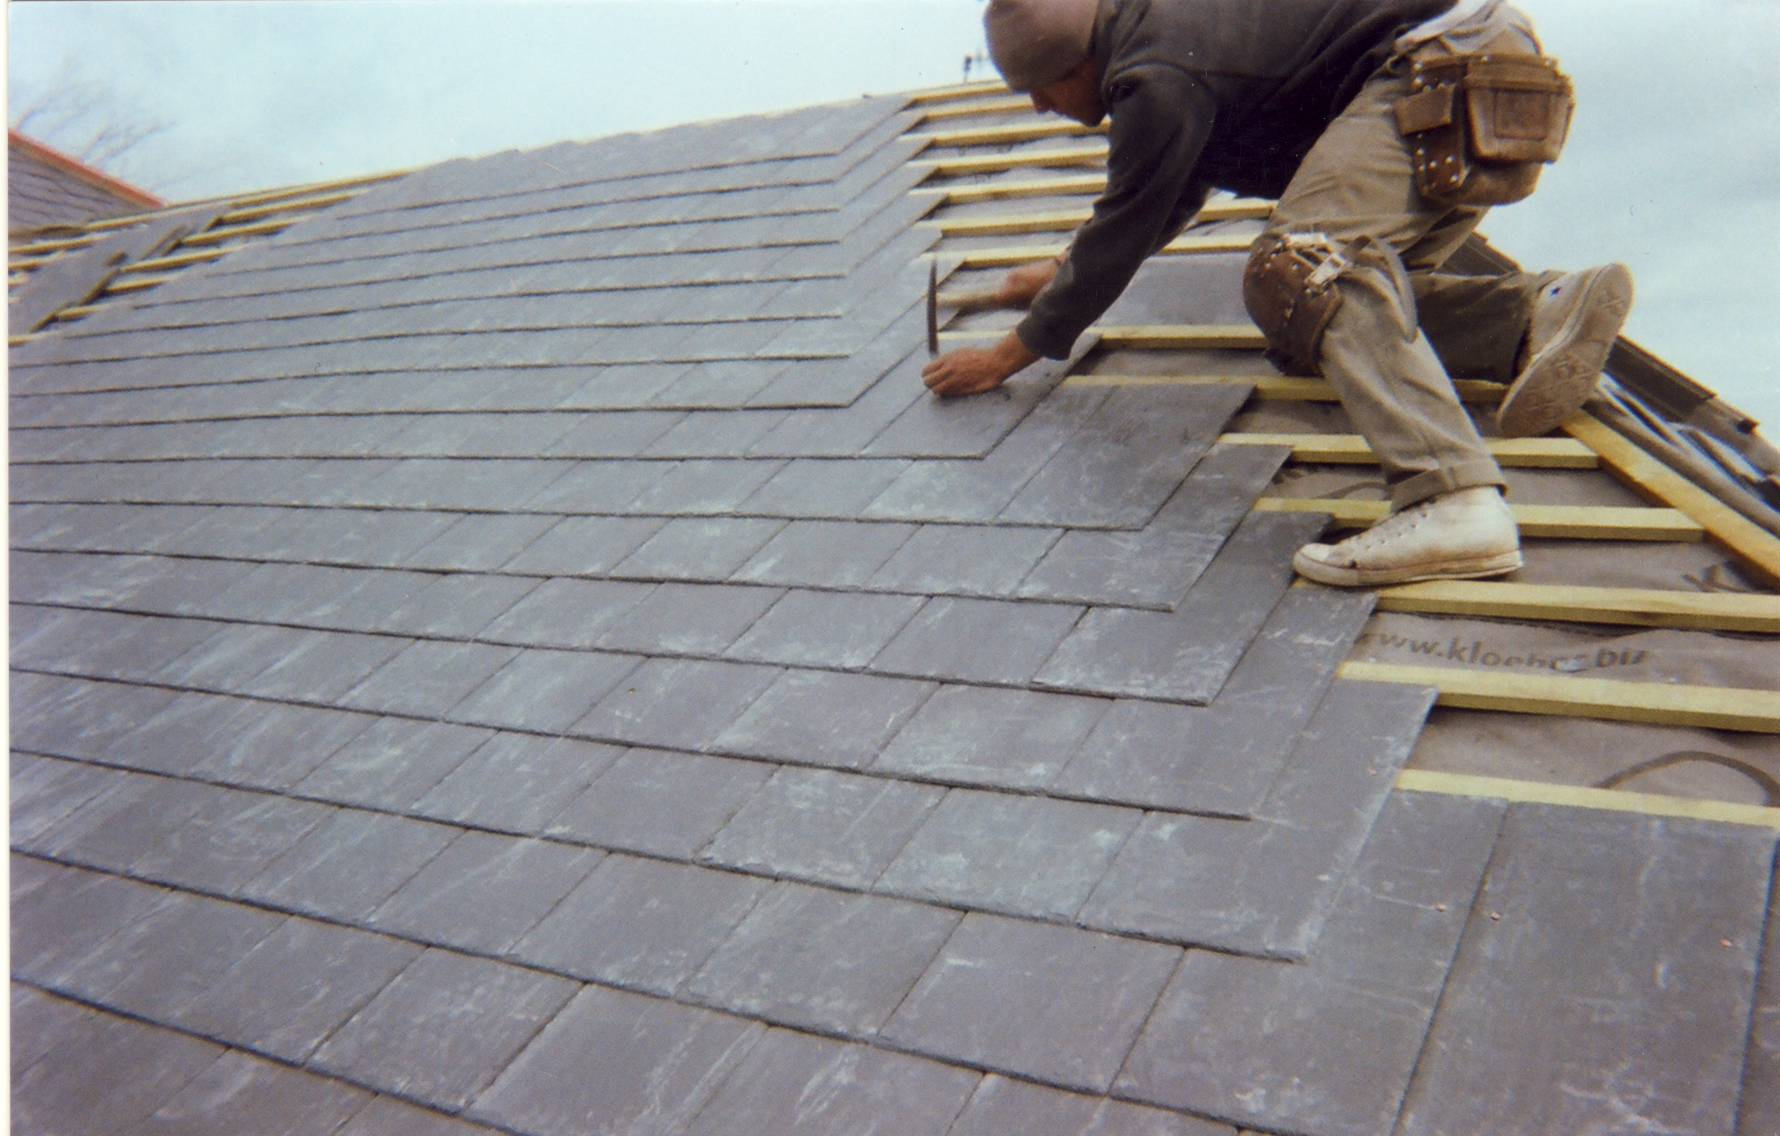 Check a Roofing Contractor's Credential